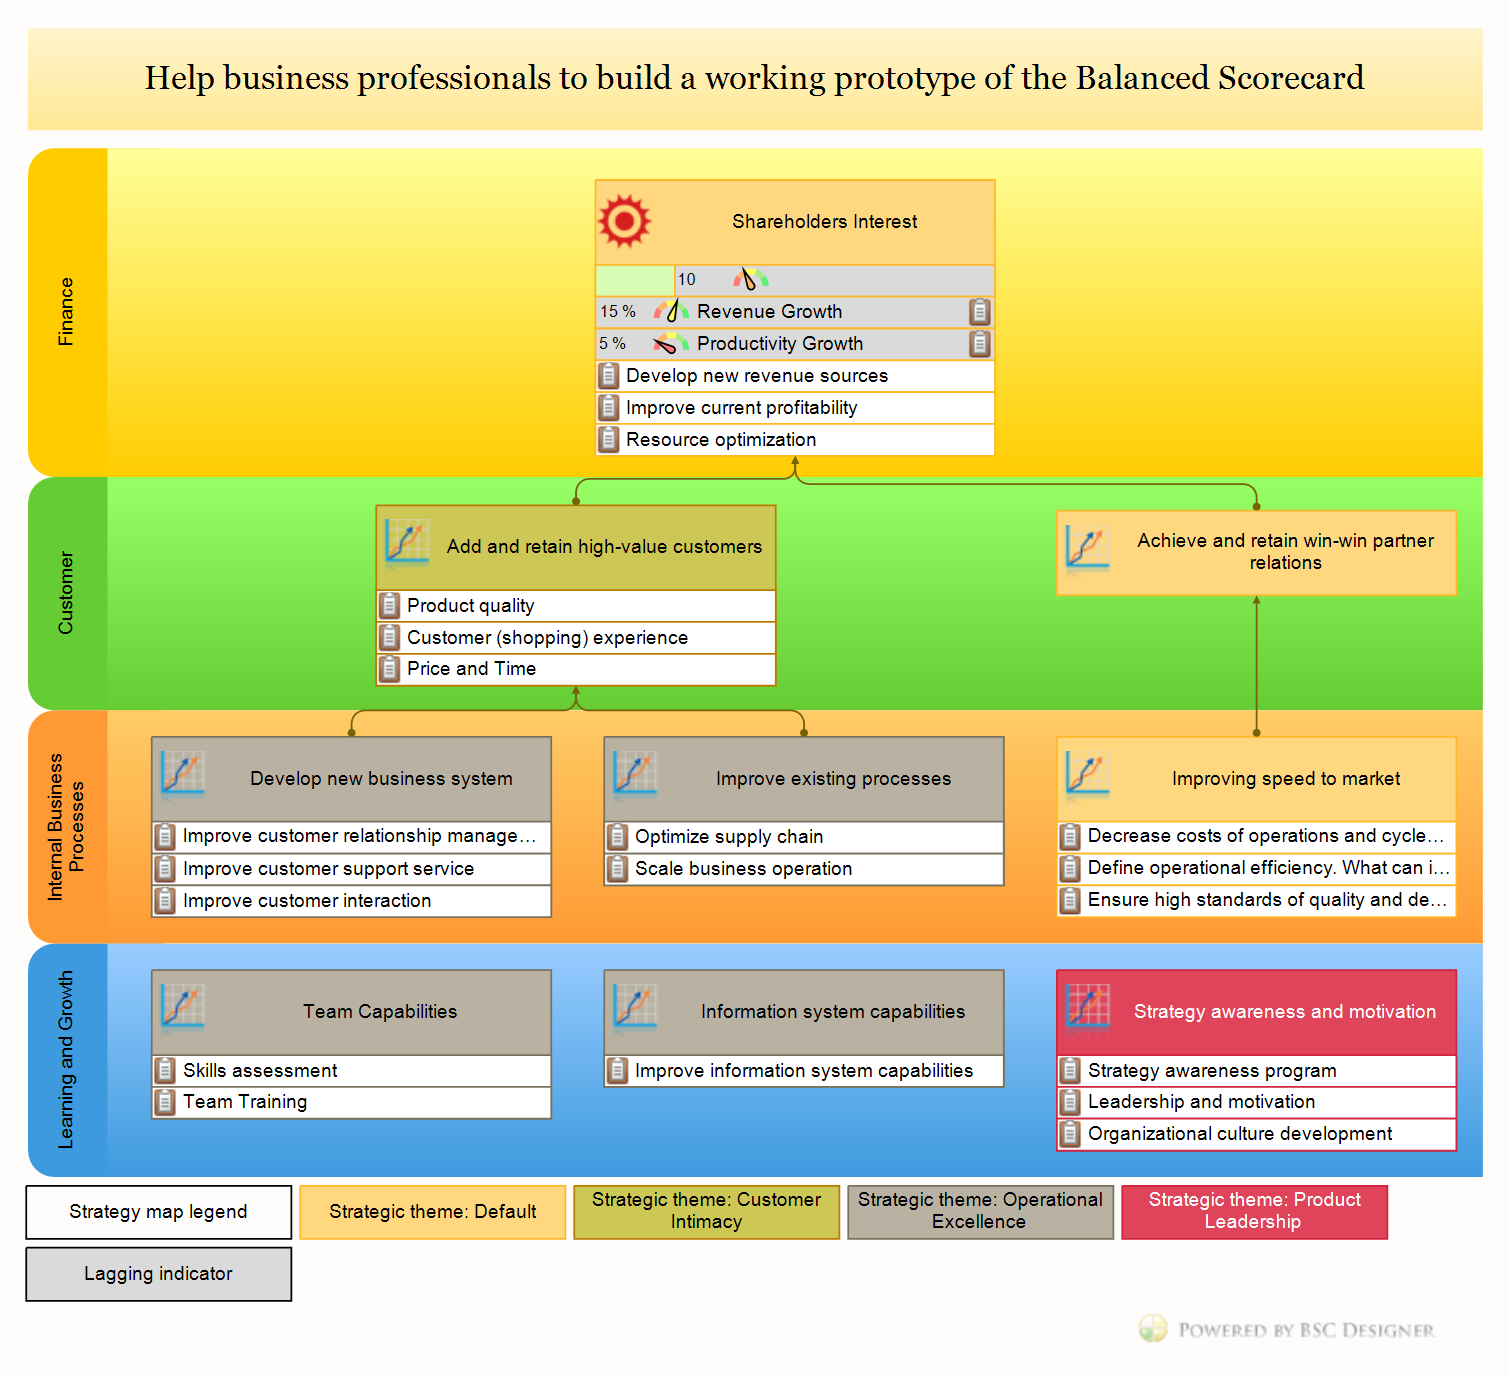 The Balanced Scorecard strategy map with four perspectives